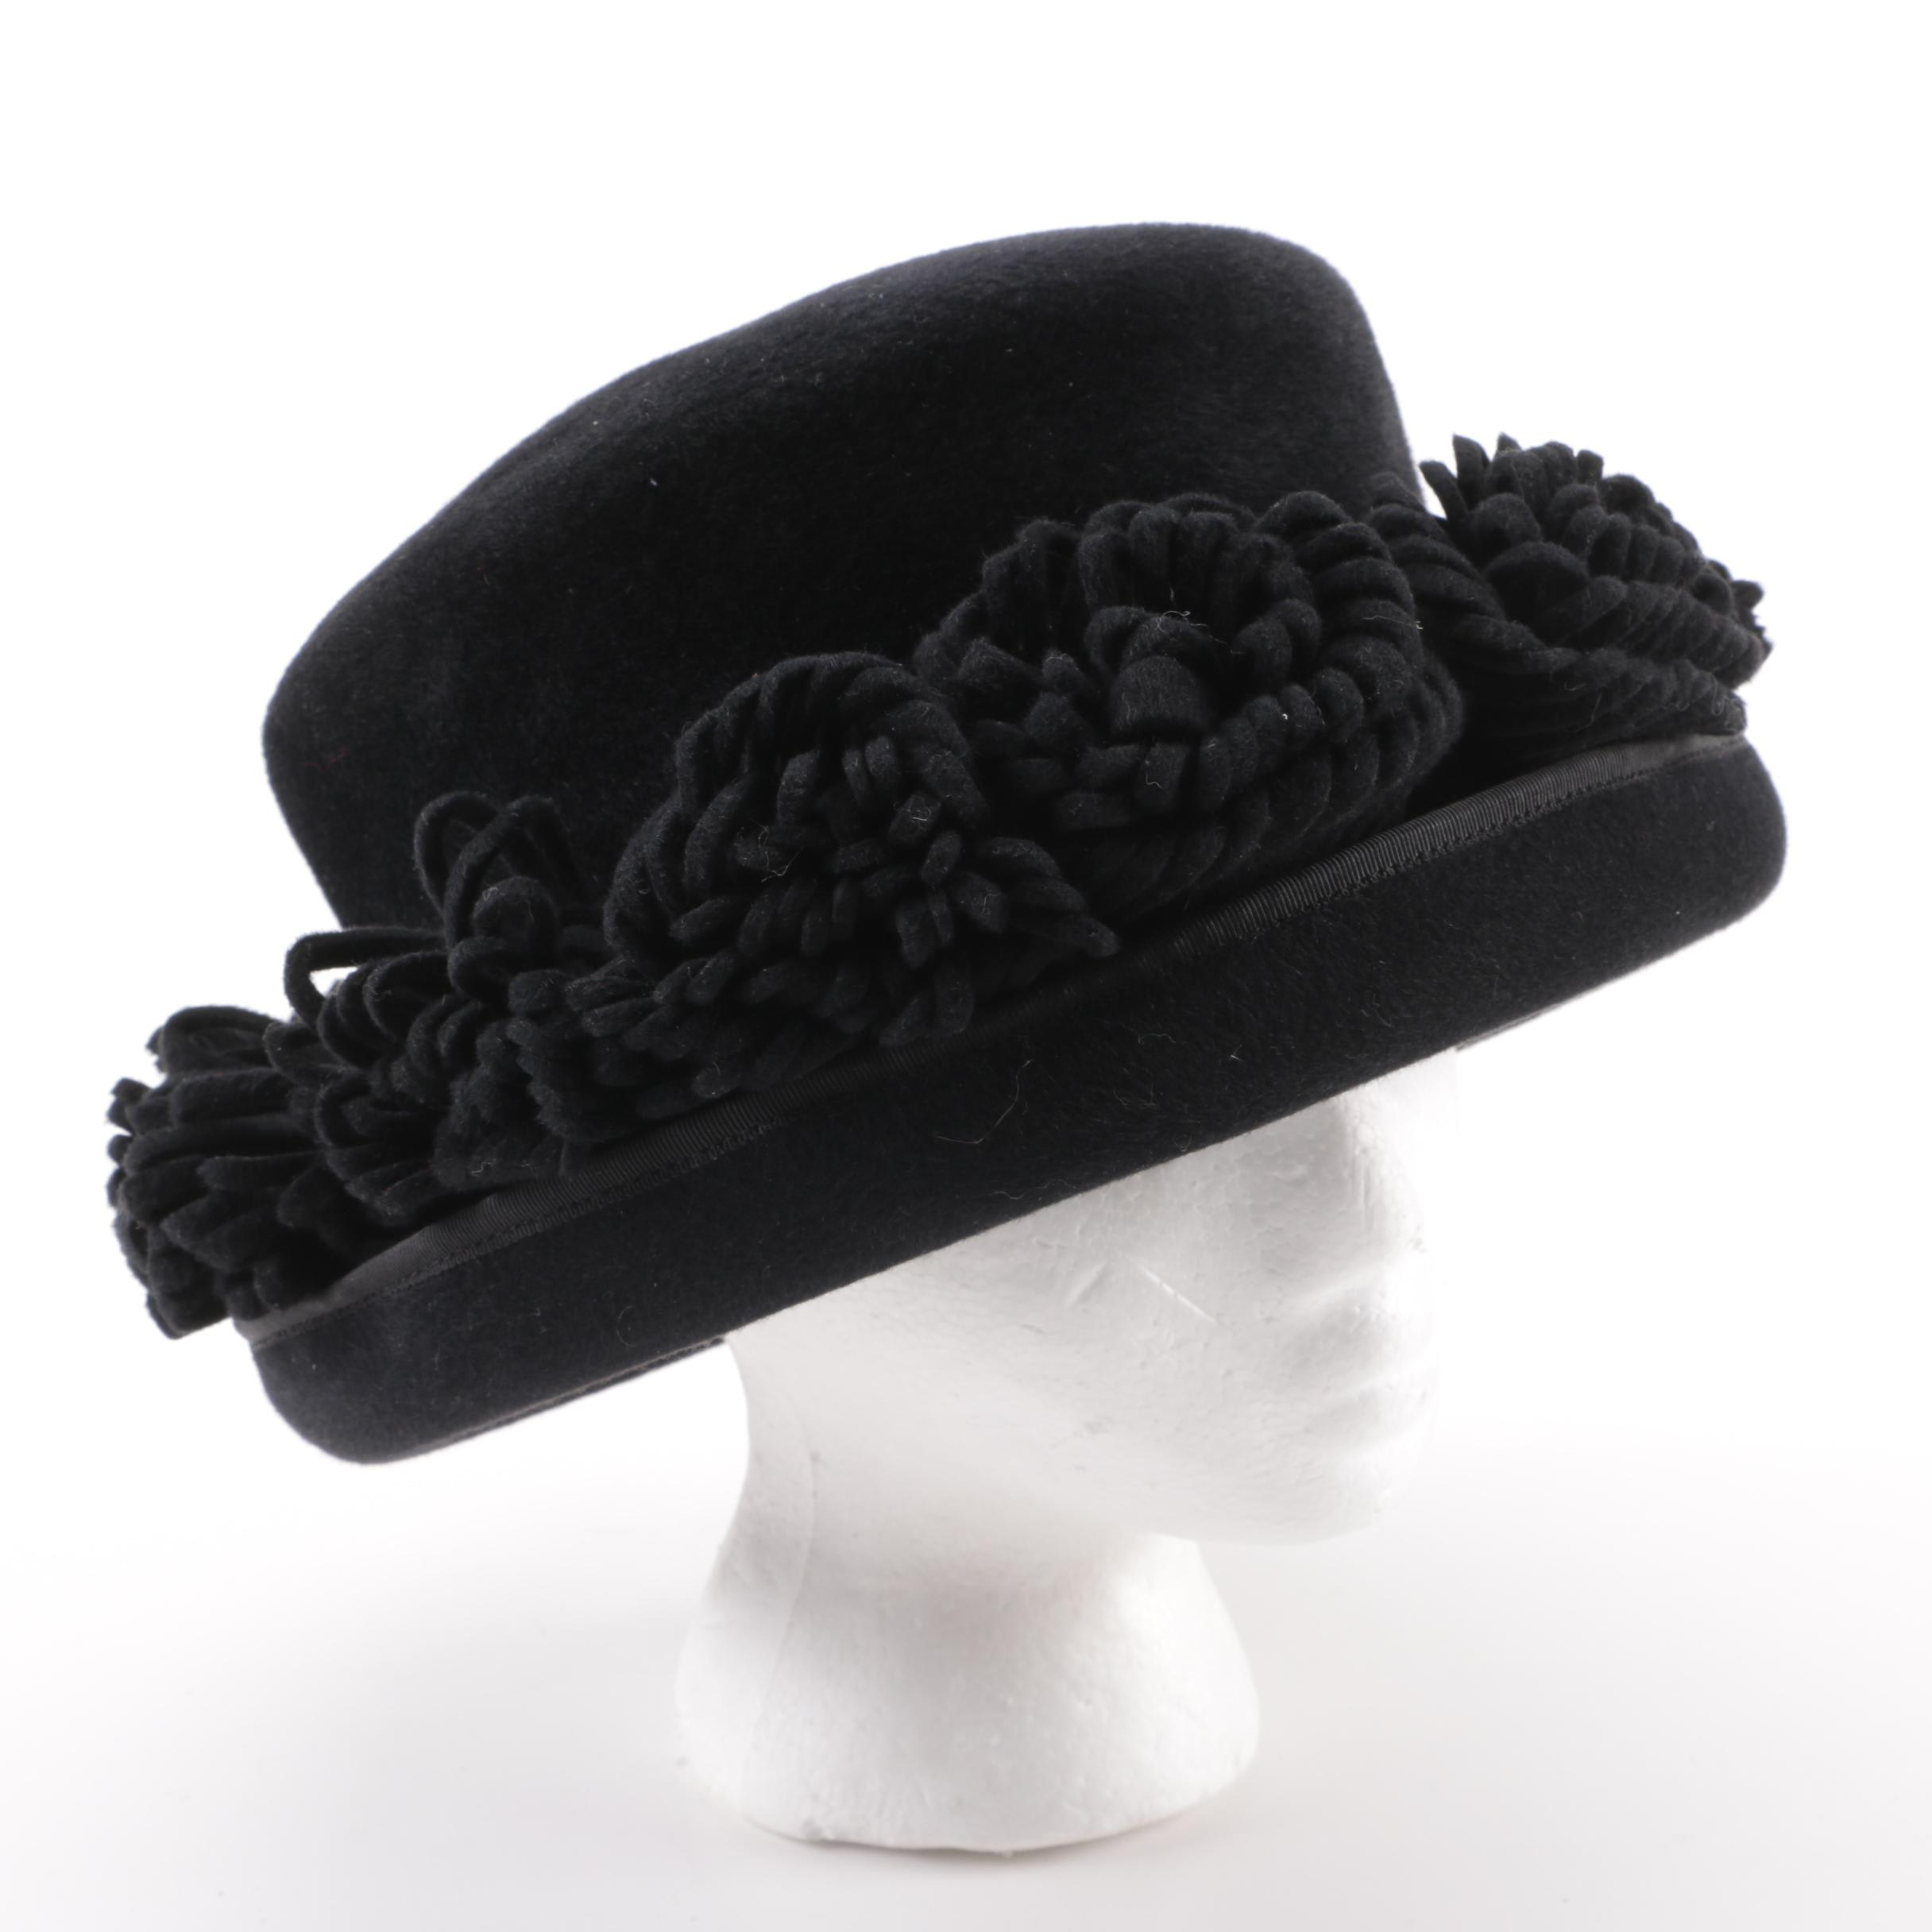 Women's Bailey Tomlin London Black Floral Felted Beaver Fur Bumper Brim Hat